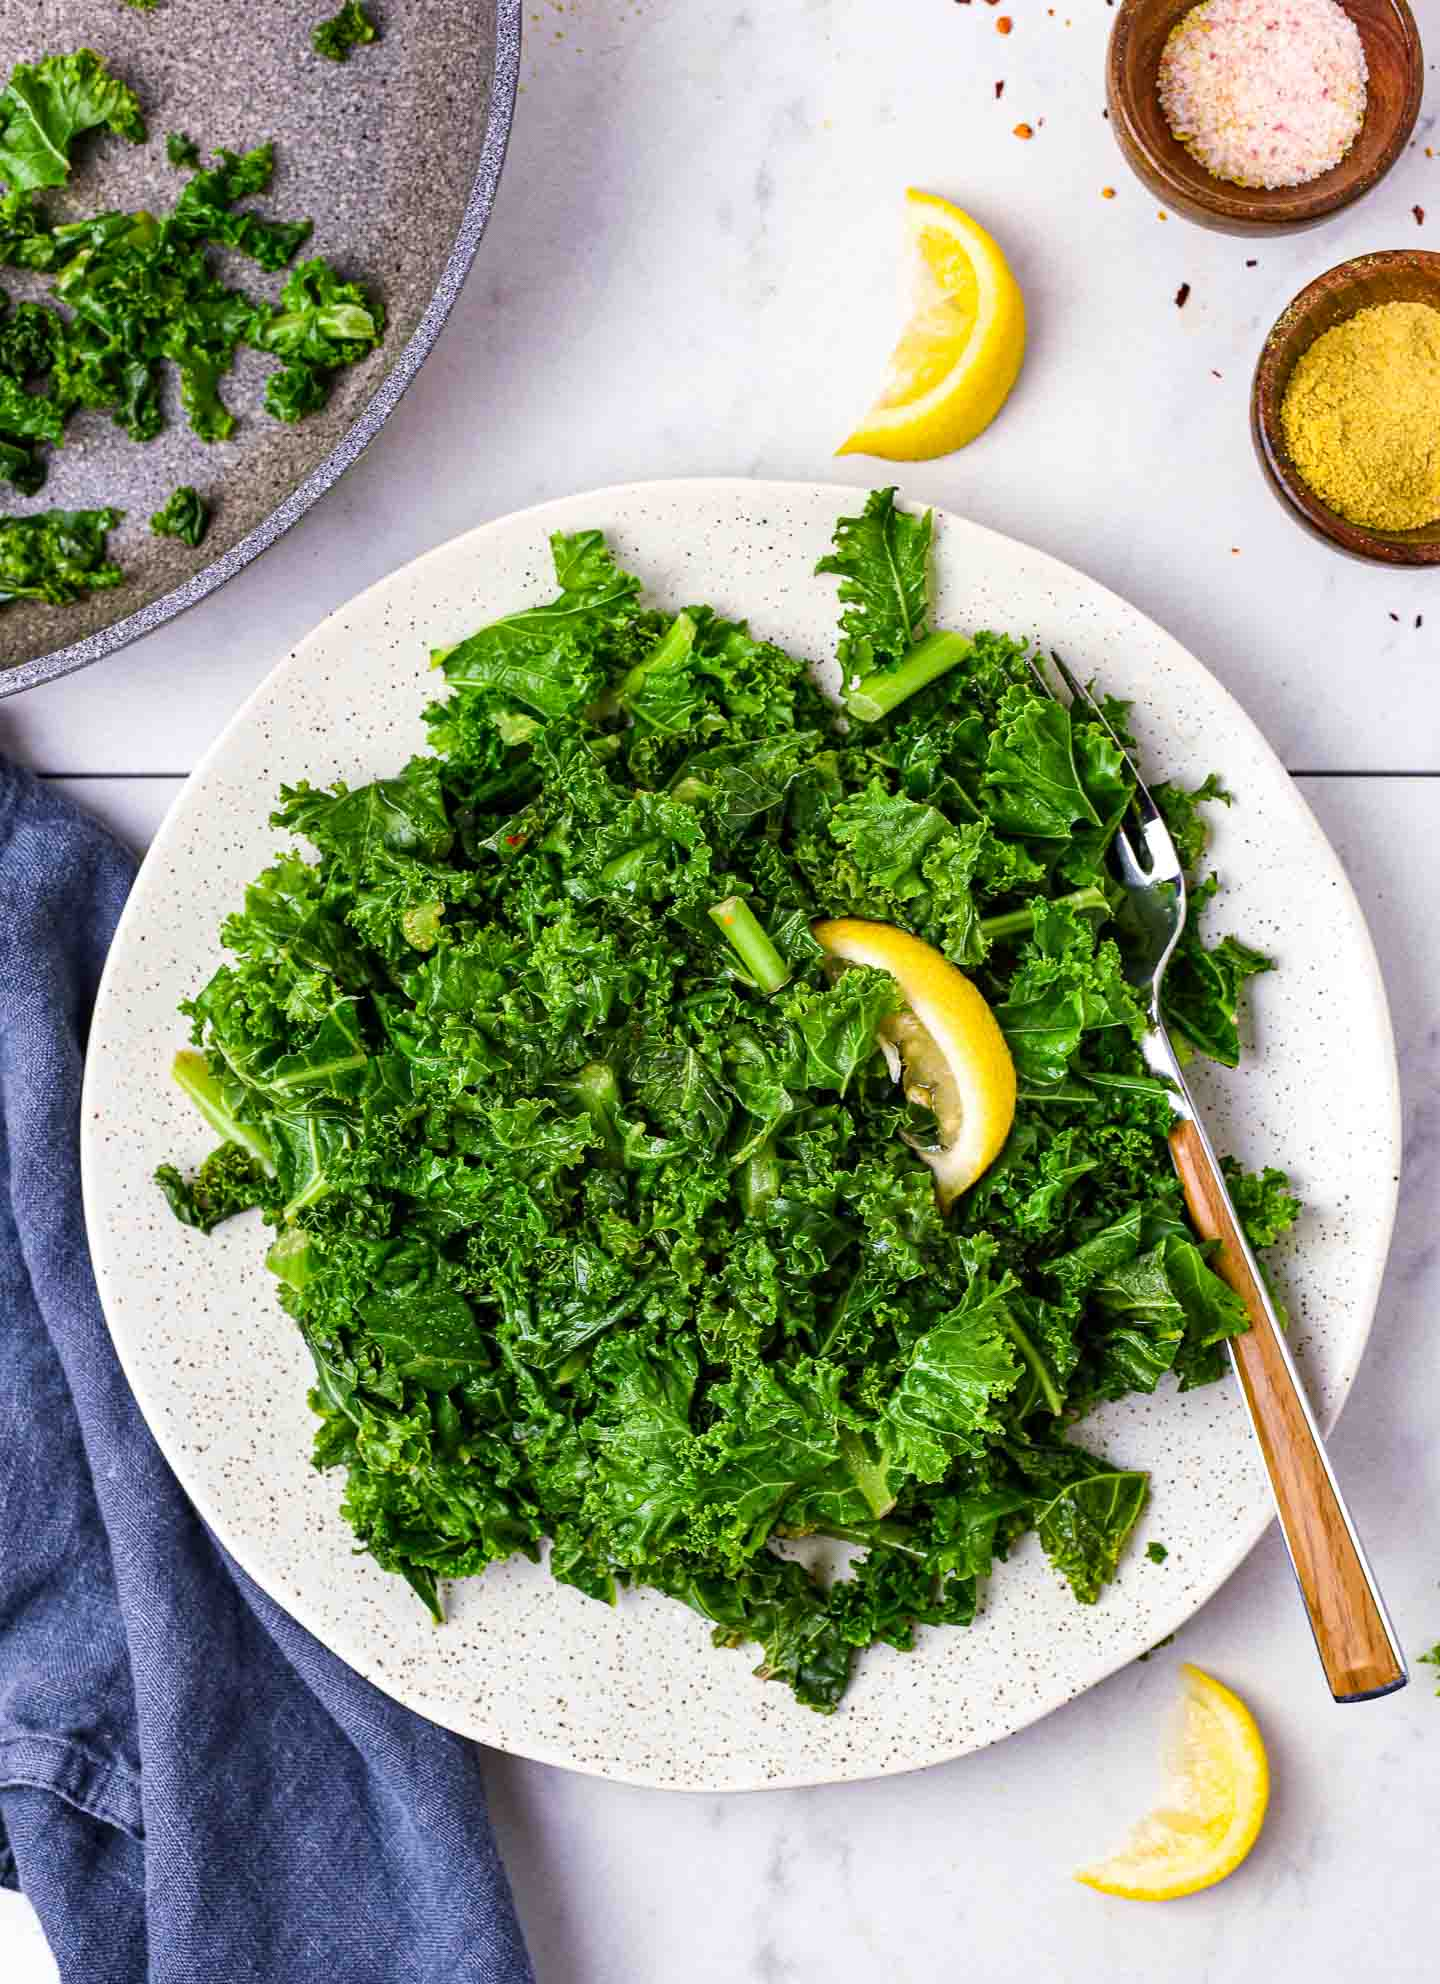 Sauteed kale on plate with lemon and fork.